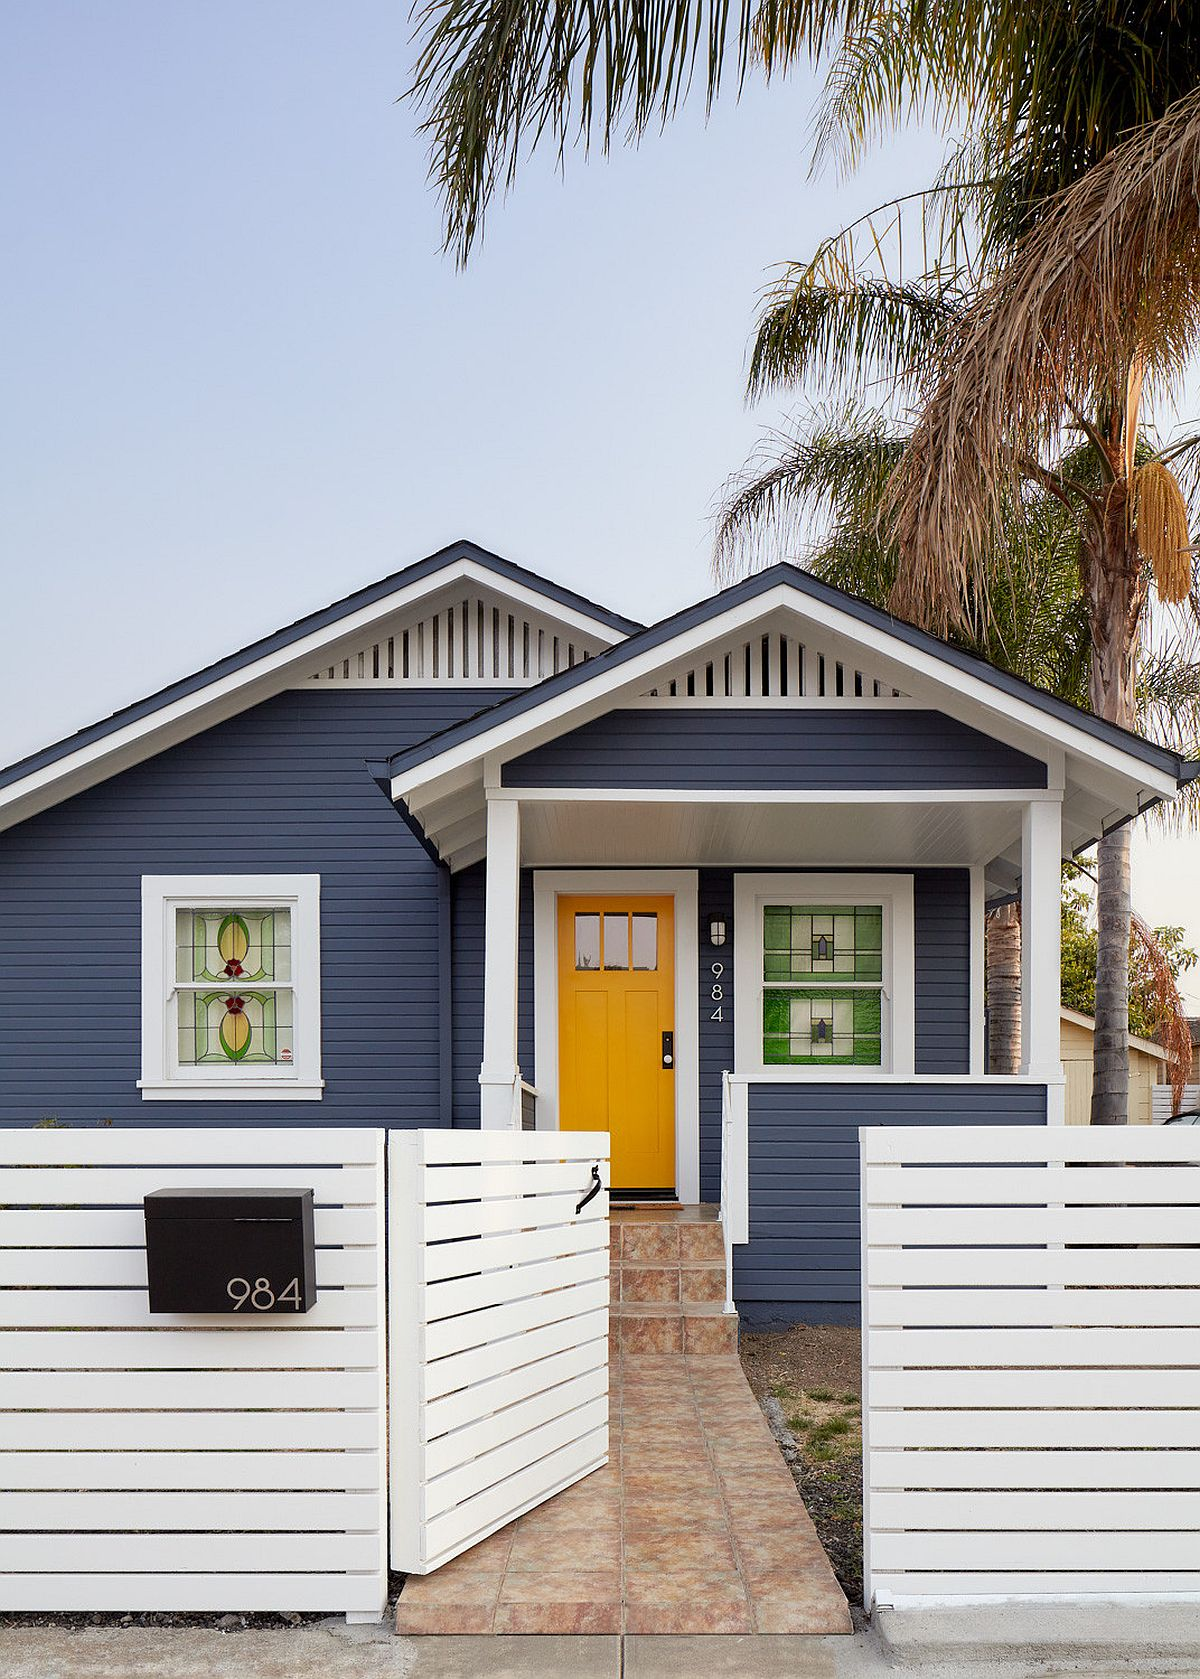 Picture-perfect modern home facade in bluish-gray and white with a dashing and trendy dark yellow door that welcomes you gleefully